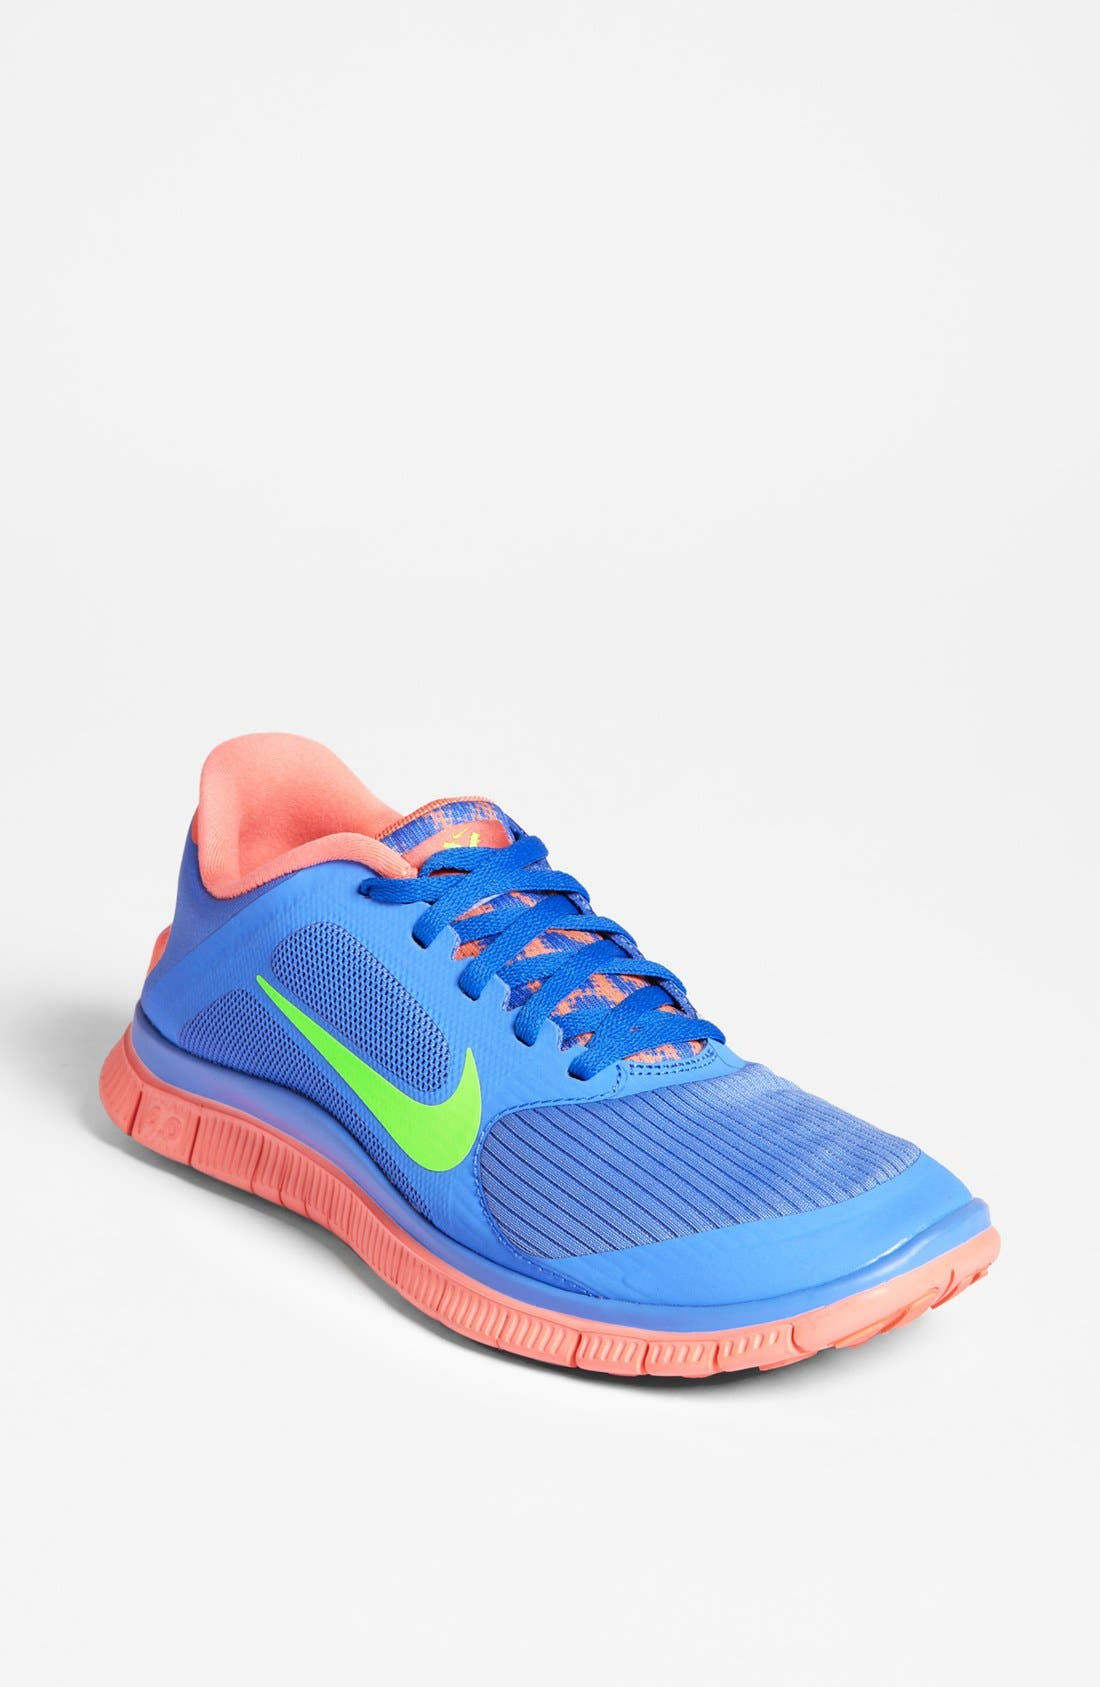 Main Image - Nike 'Free 4.0 v3' Running Shoe (Women)